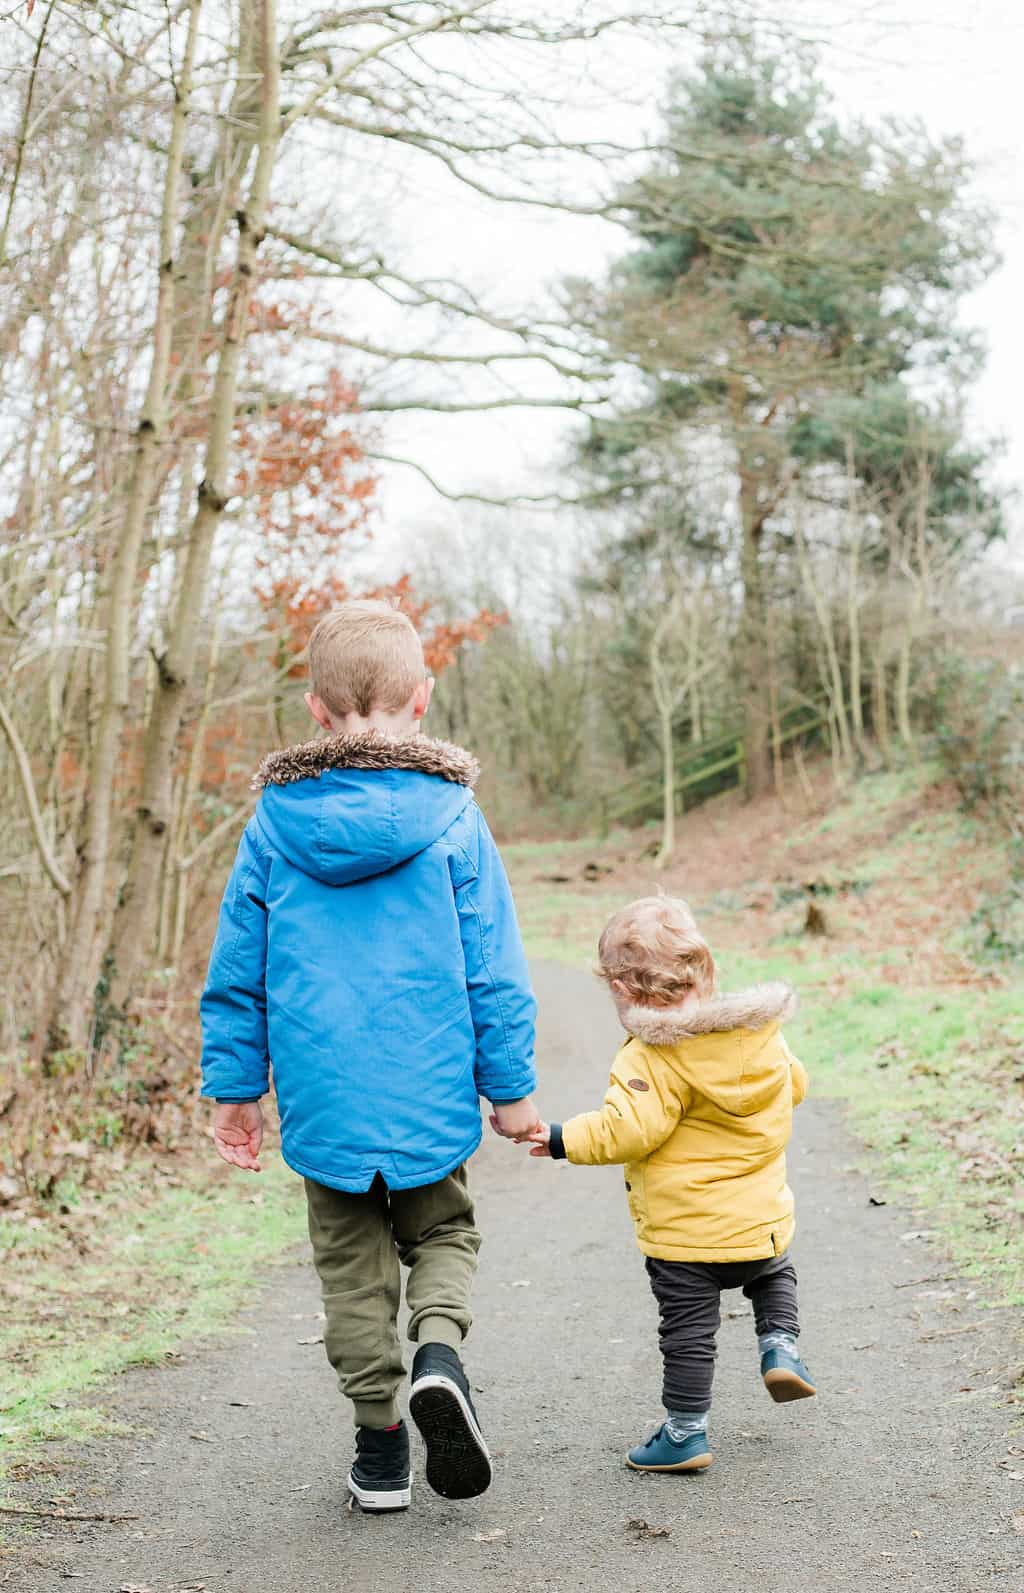 Brothers hand-in-hand walking forest